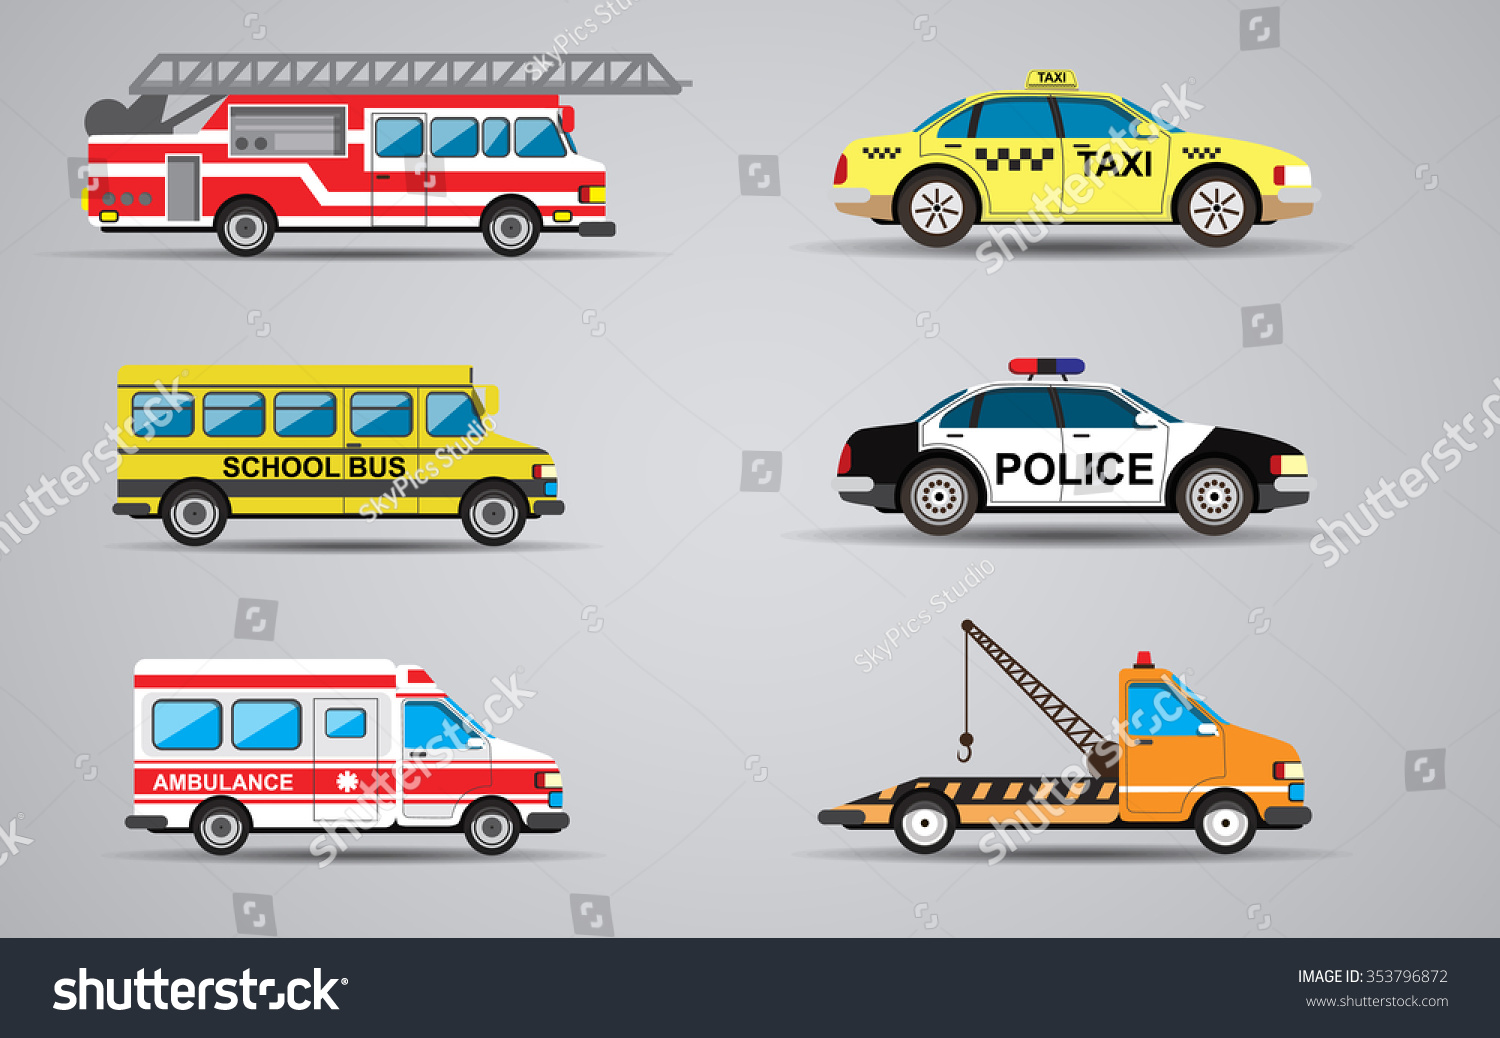 set isolated transport icons fire truck stock illustration 353796872 shutterstock. Black Bedroom Furniture Sets. Home Design Ideas